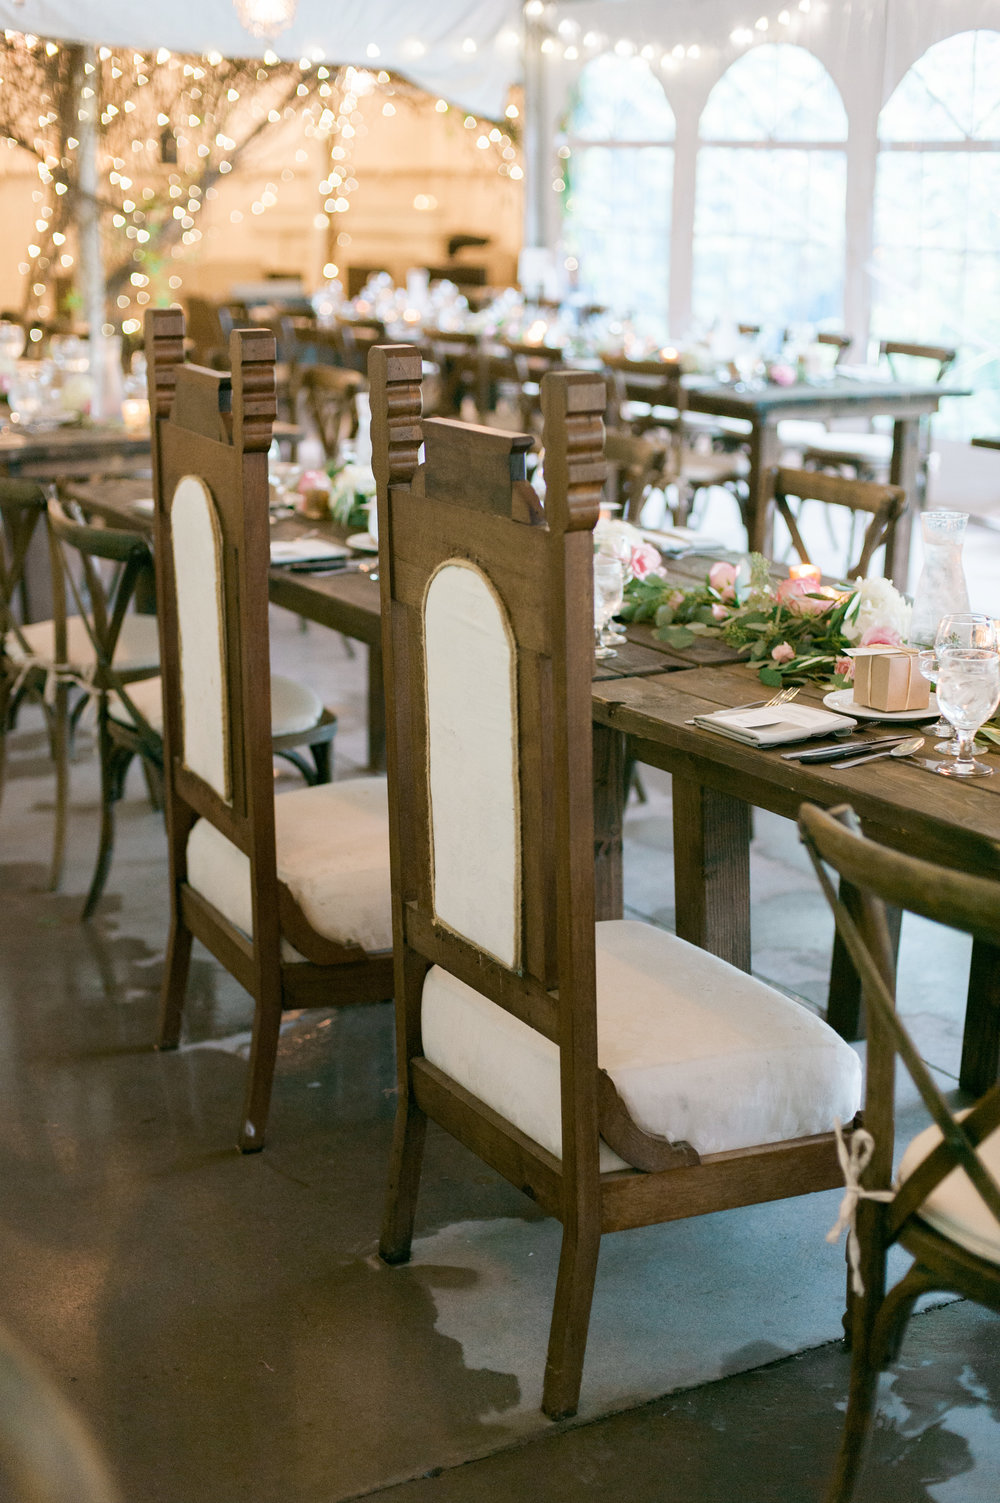 Venue & Flowers: Camrose Hill Flower Farm | Photography: Emily Steffen Photography | Videography: Sunset Blue Productions | Hair/Makeup: Hayley Sachs Artistry | Stationery:  Printerette Press | Catering: Chowgirls Killer Catering | Bartending: With a Twist | Dessert: Pattiserie 46 and Buttercream Bakery | Coffee: Coffee Cart | Ceremony Music: Loring String Quartet | Reception Entertainment: Adagio | Rentals: Ultimate Events | Gown: Allure Bridals, Our Shop